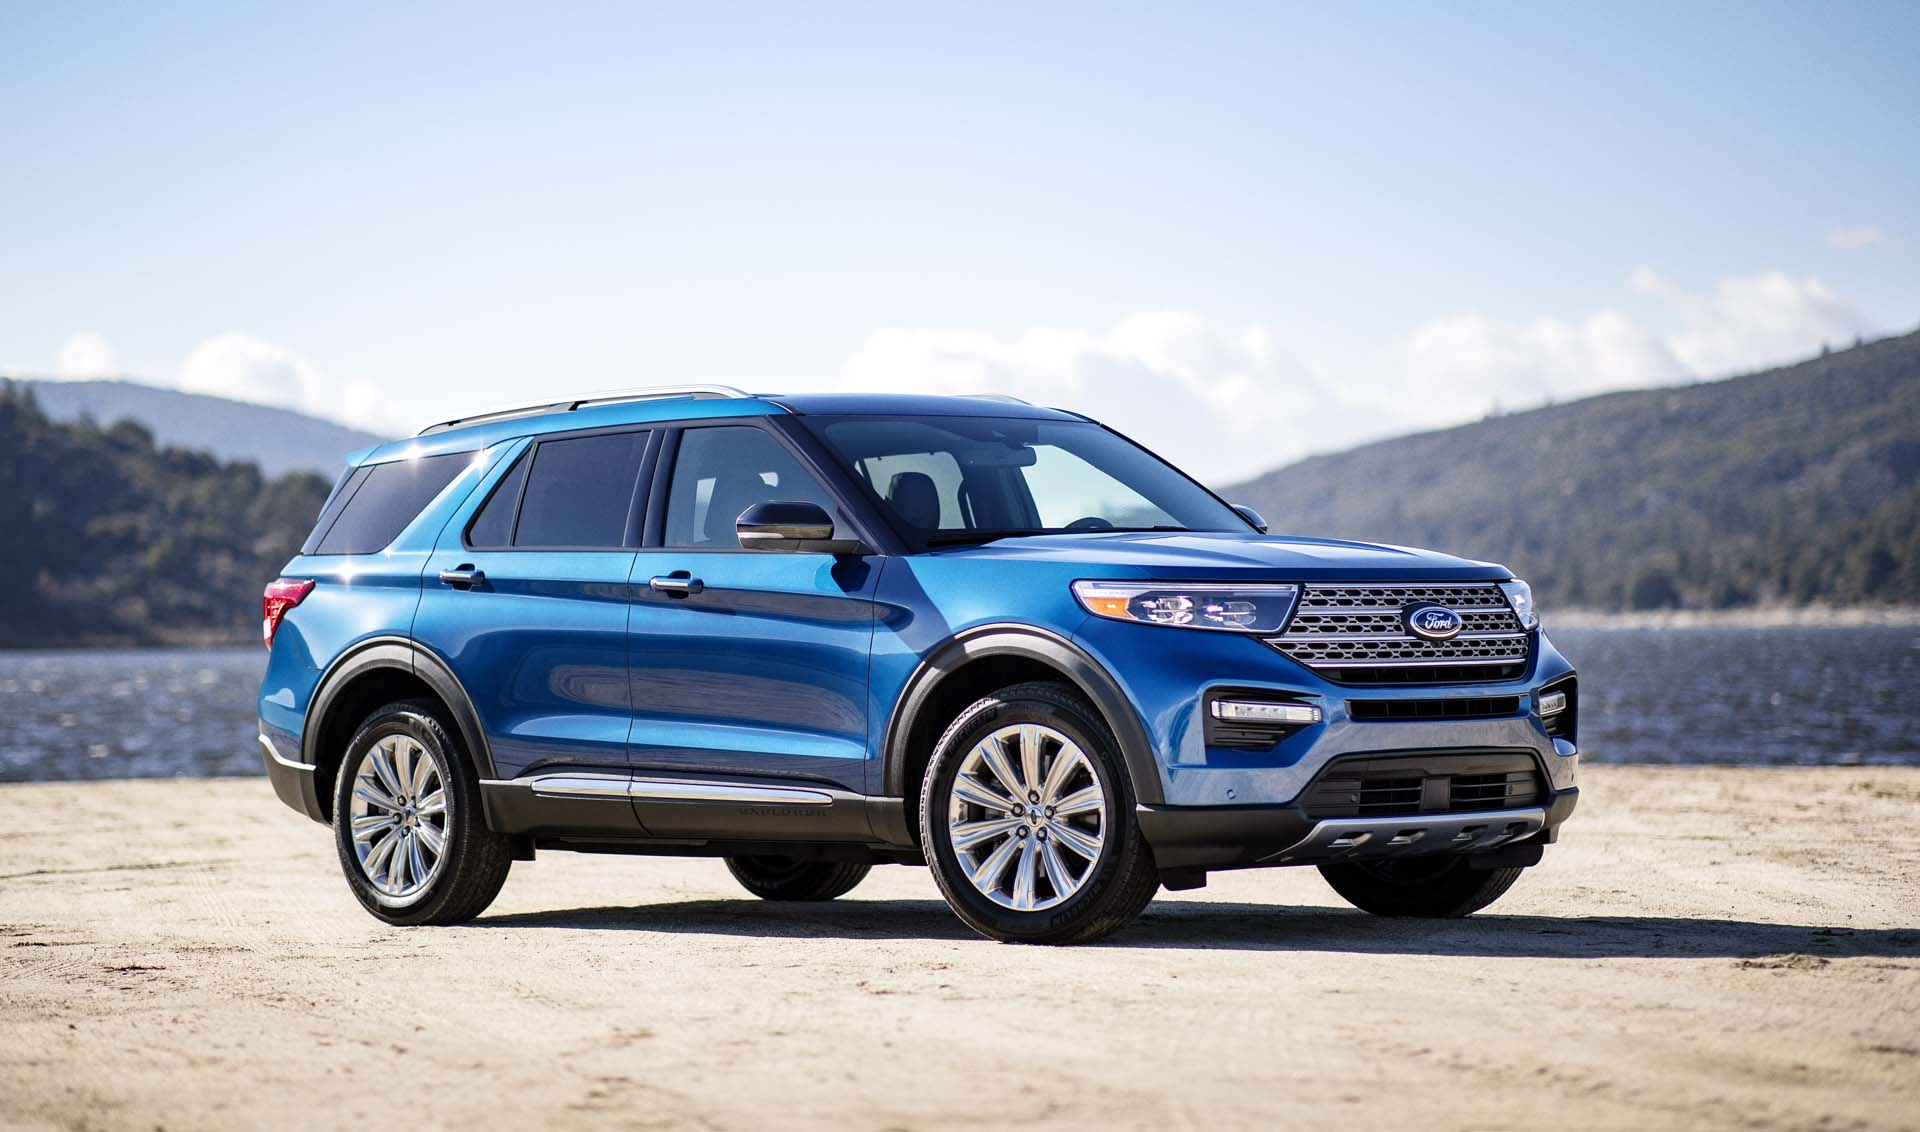 2021 Ford Mach E Is Ford's First Electric SUV >> 2020 Ford Explorer Hybrid Will Carry A Price Tag Over 50k